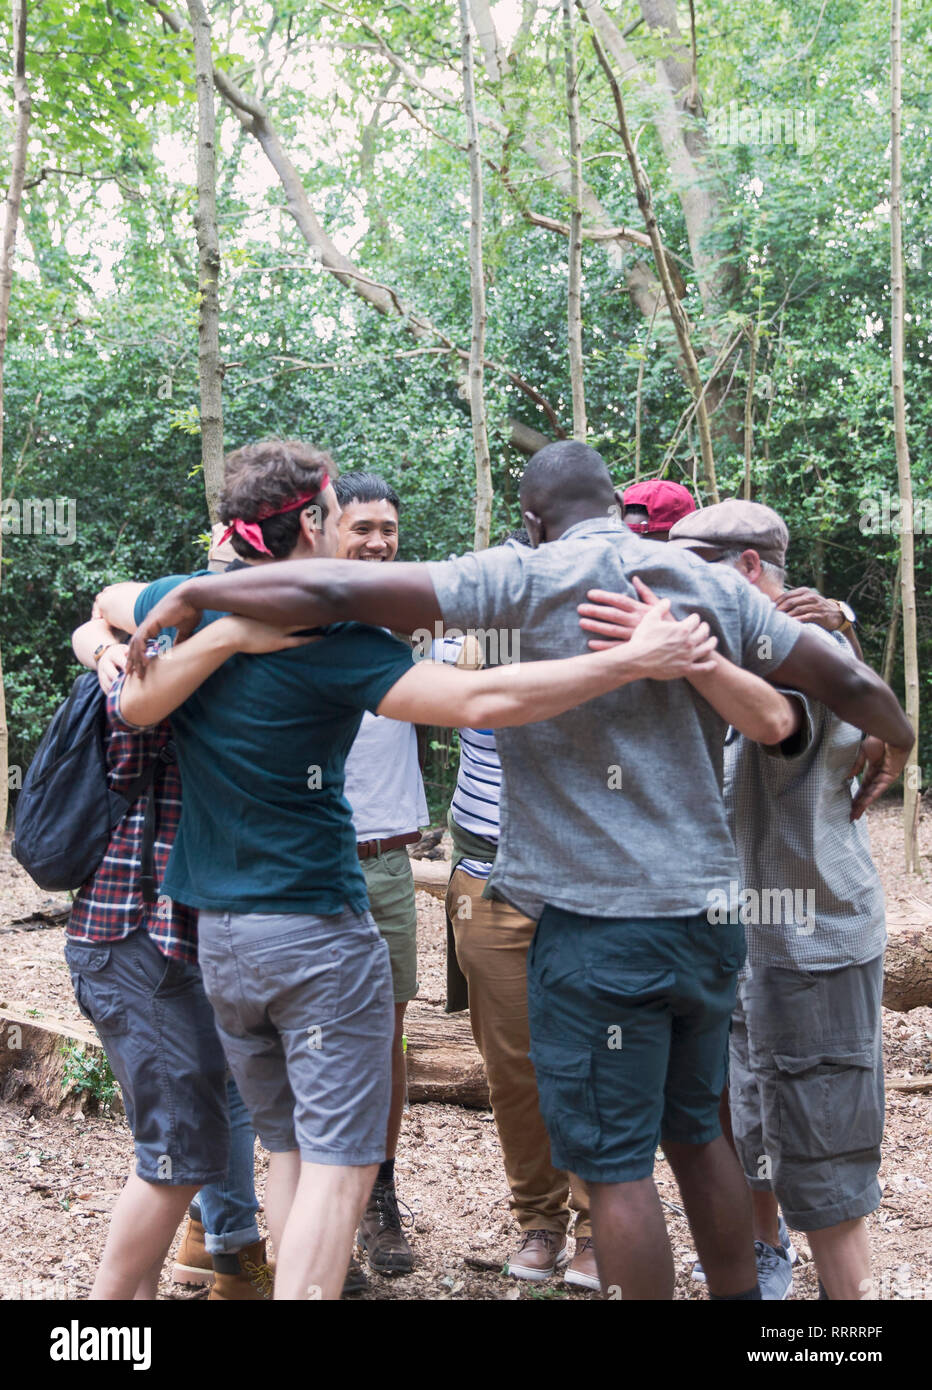 Mens group hugging in huddle, hiking in woods - Stock Image